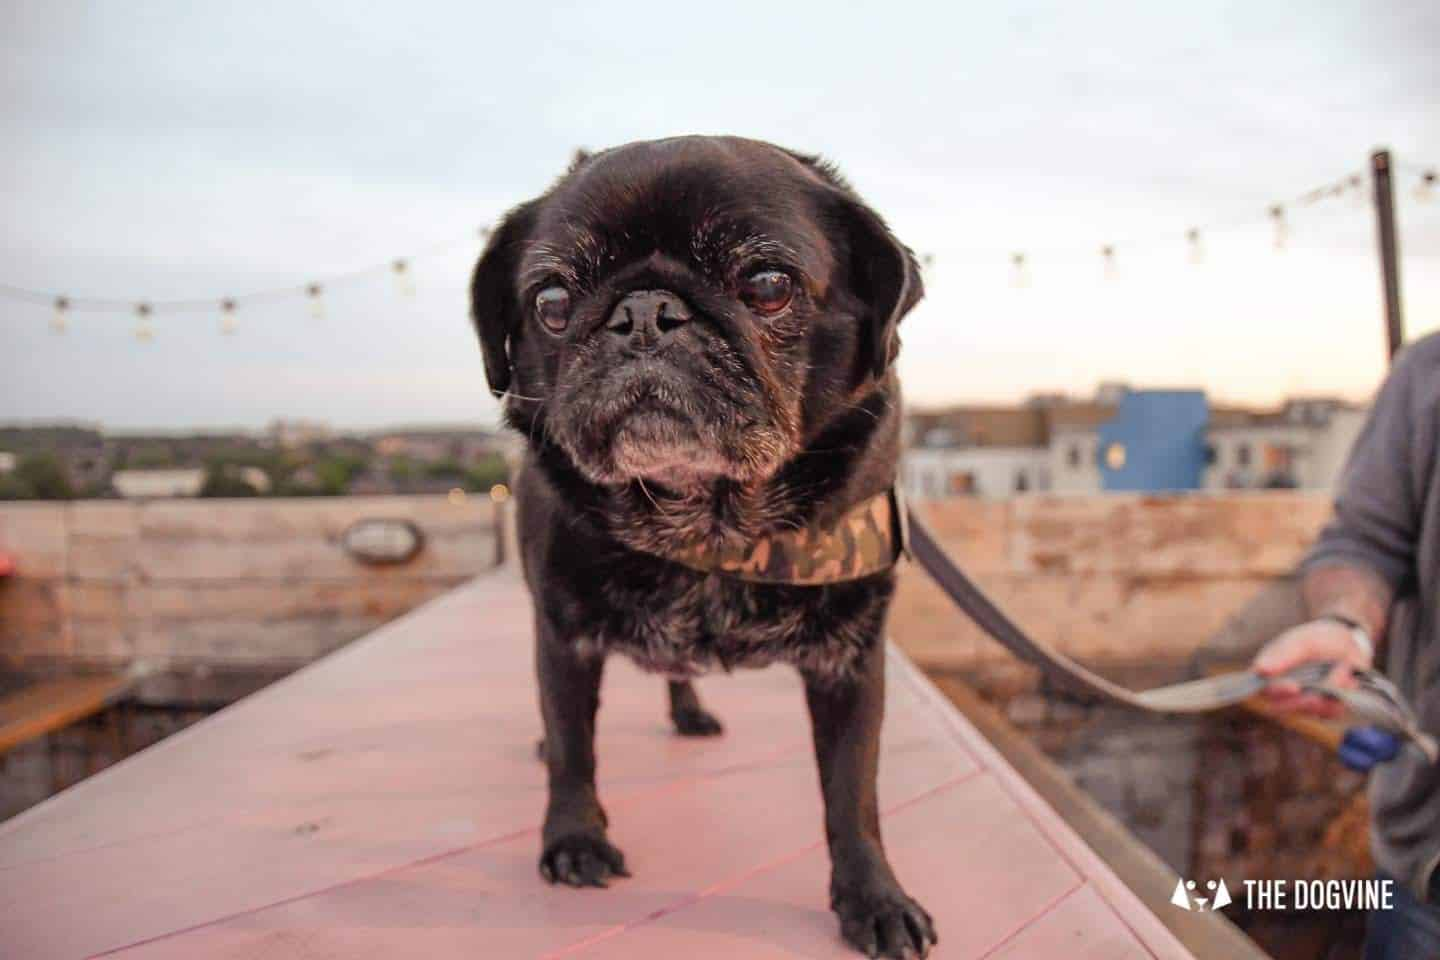 Spectacular Movie Moments at the Dog-friendly Rooftop Film Club 39